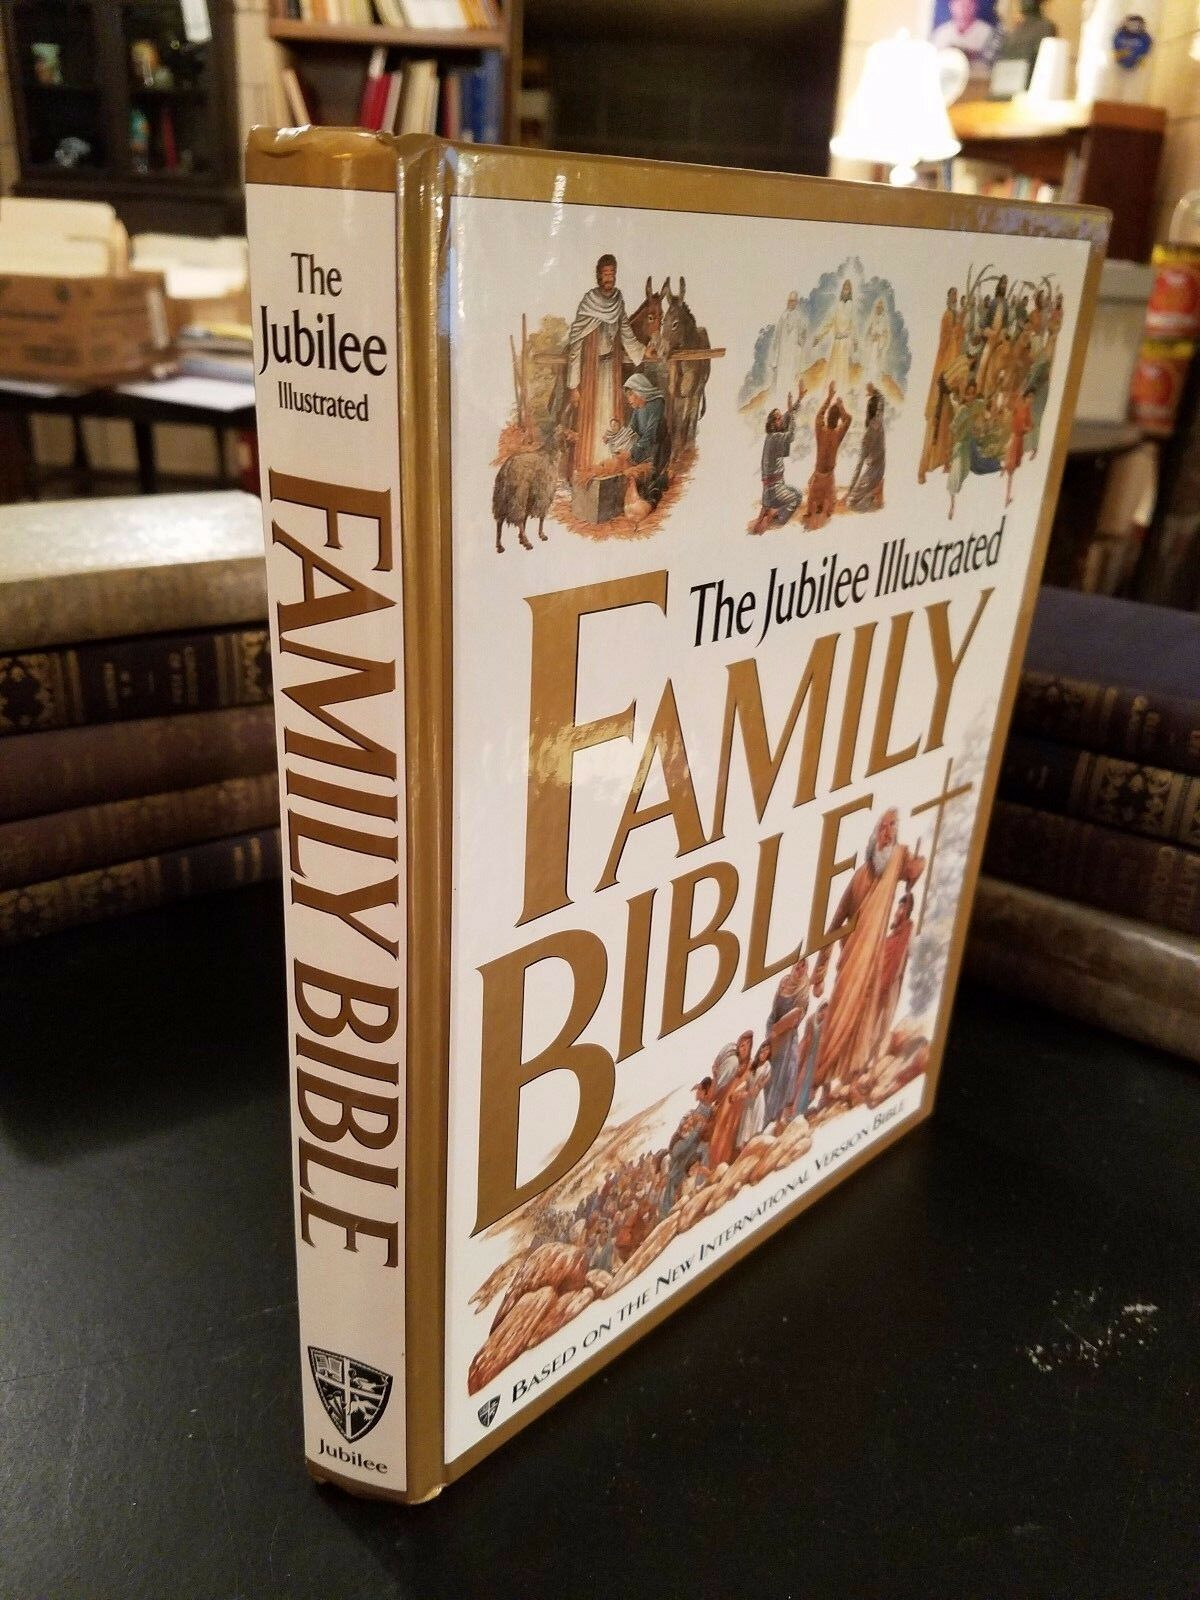 the jubilee illustrated family bible illustrated 1997 based on the niv bible